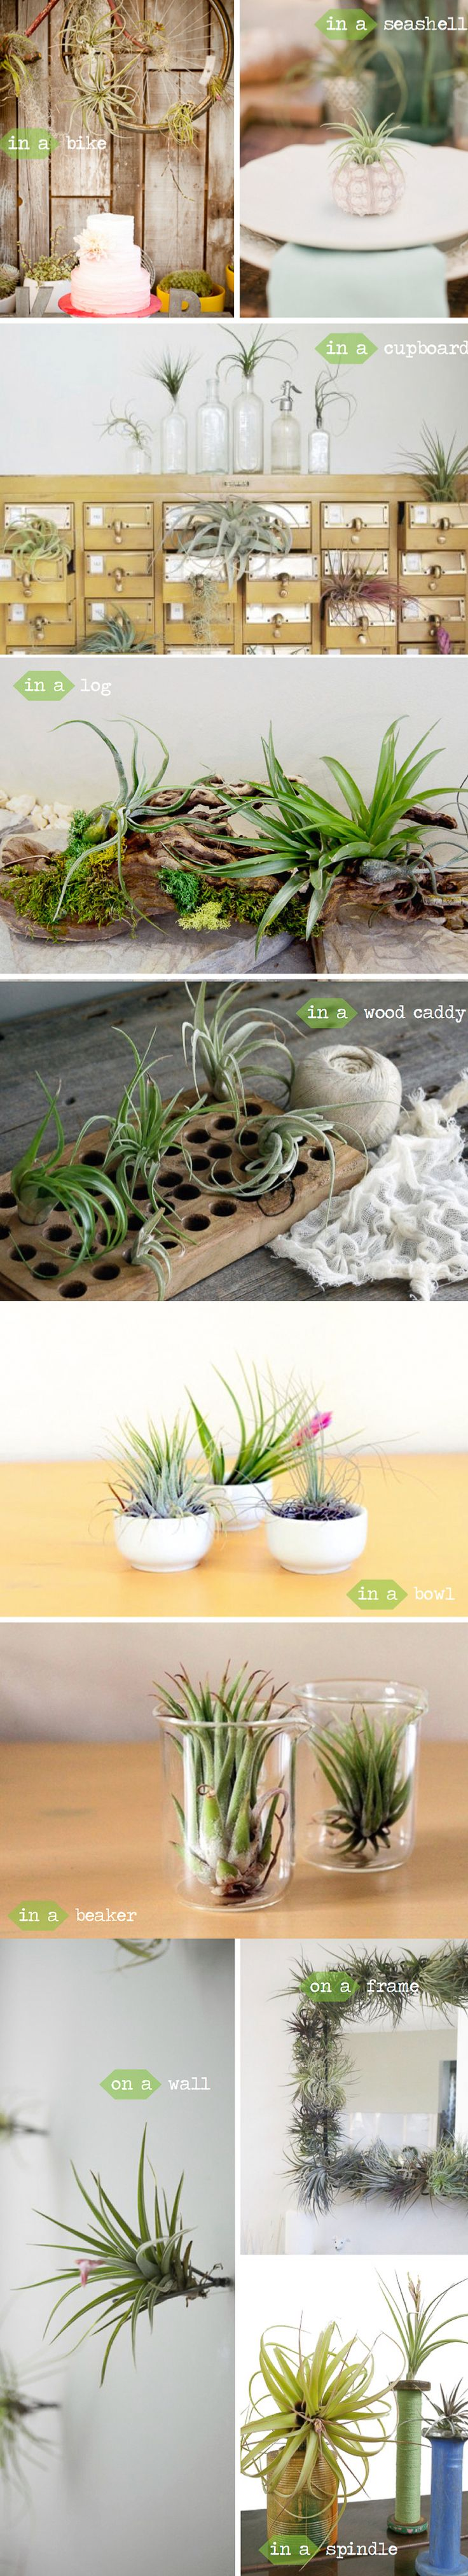 15 best images about table display on pinterest mantles for Air plant decoration